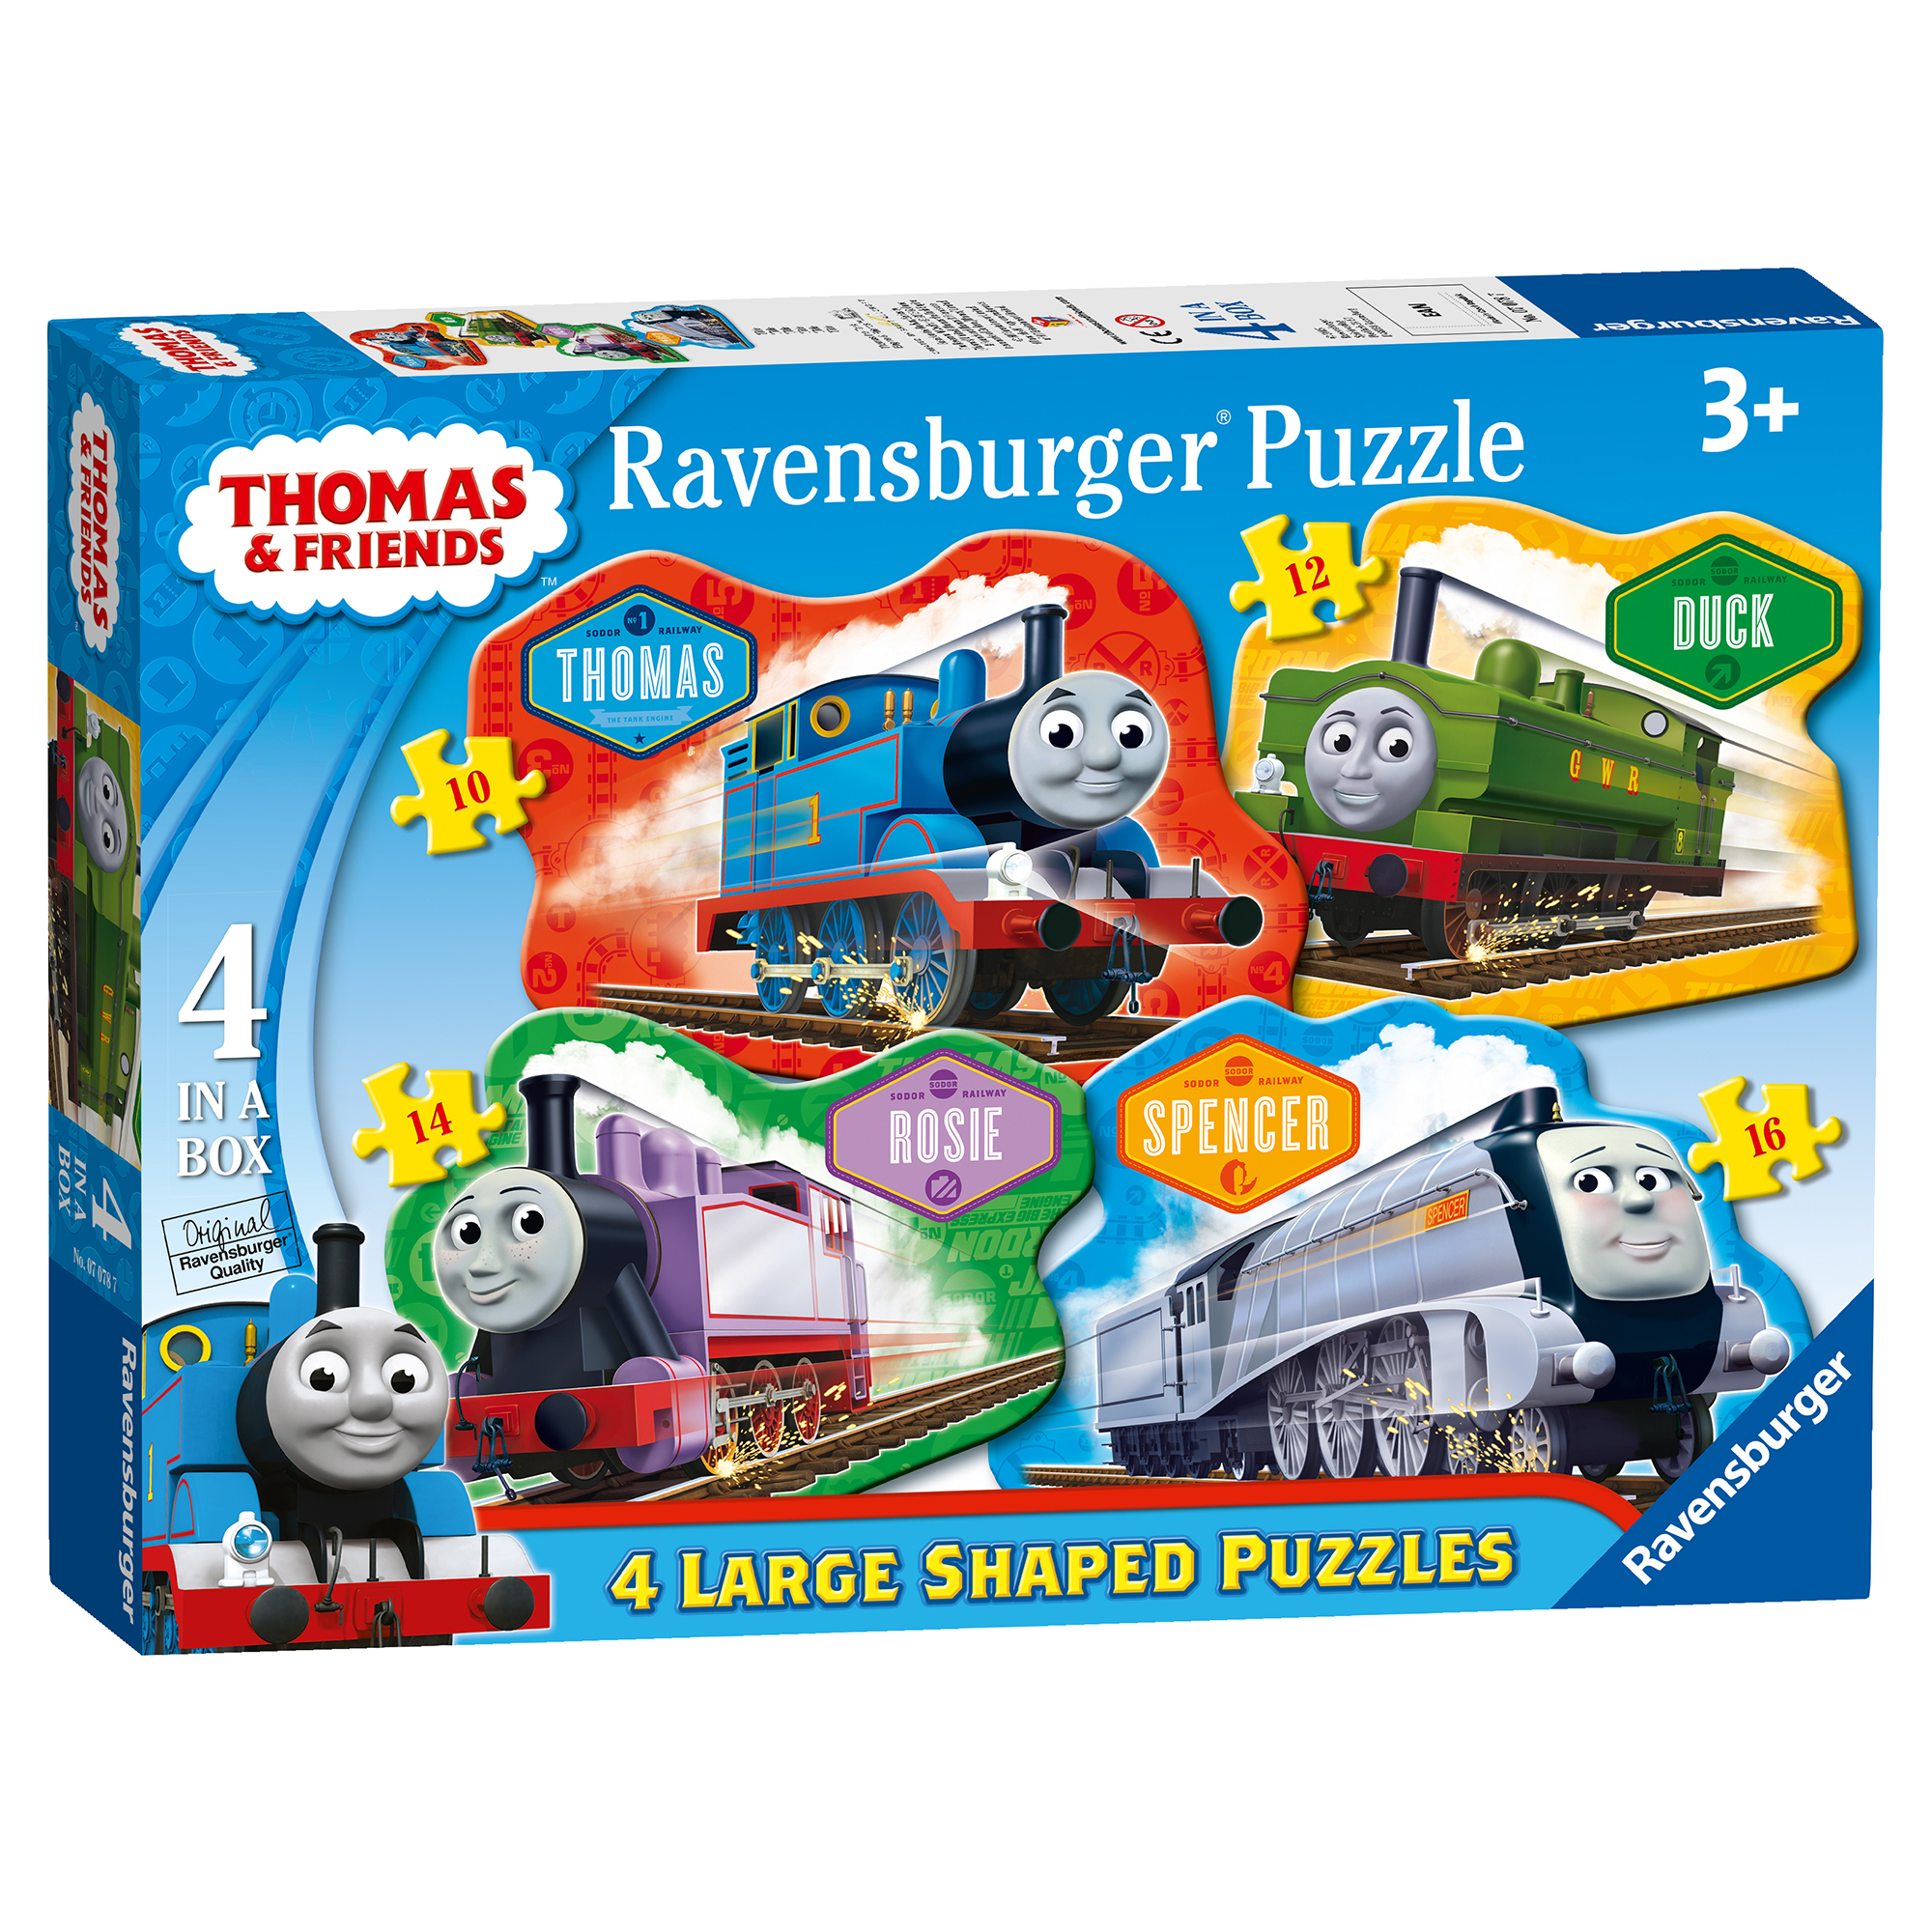 Ravensburger Thomas & Friends 4 Shaped Puzzles